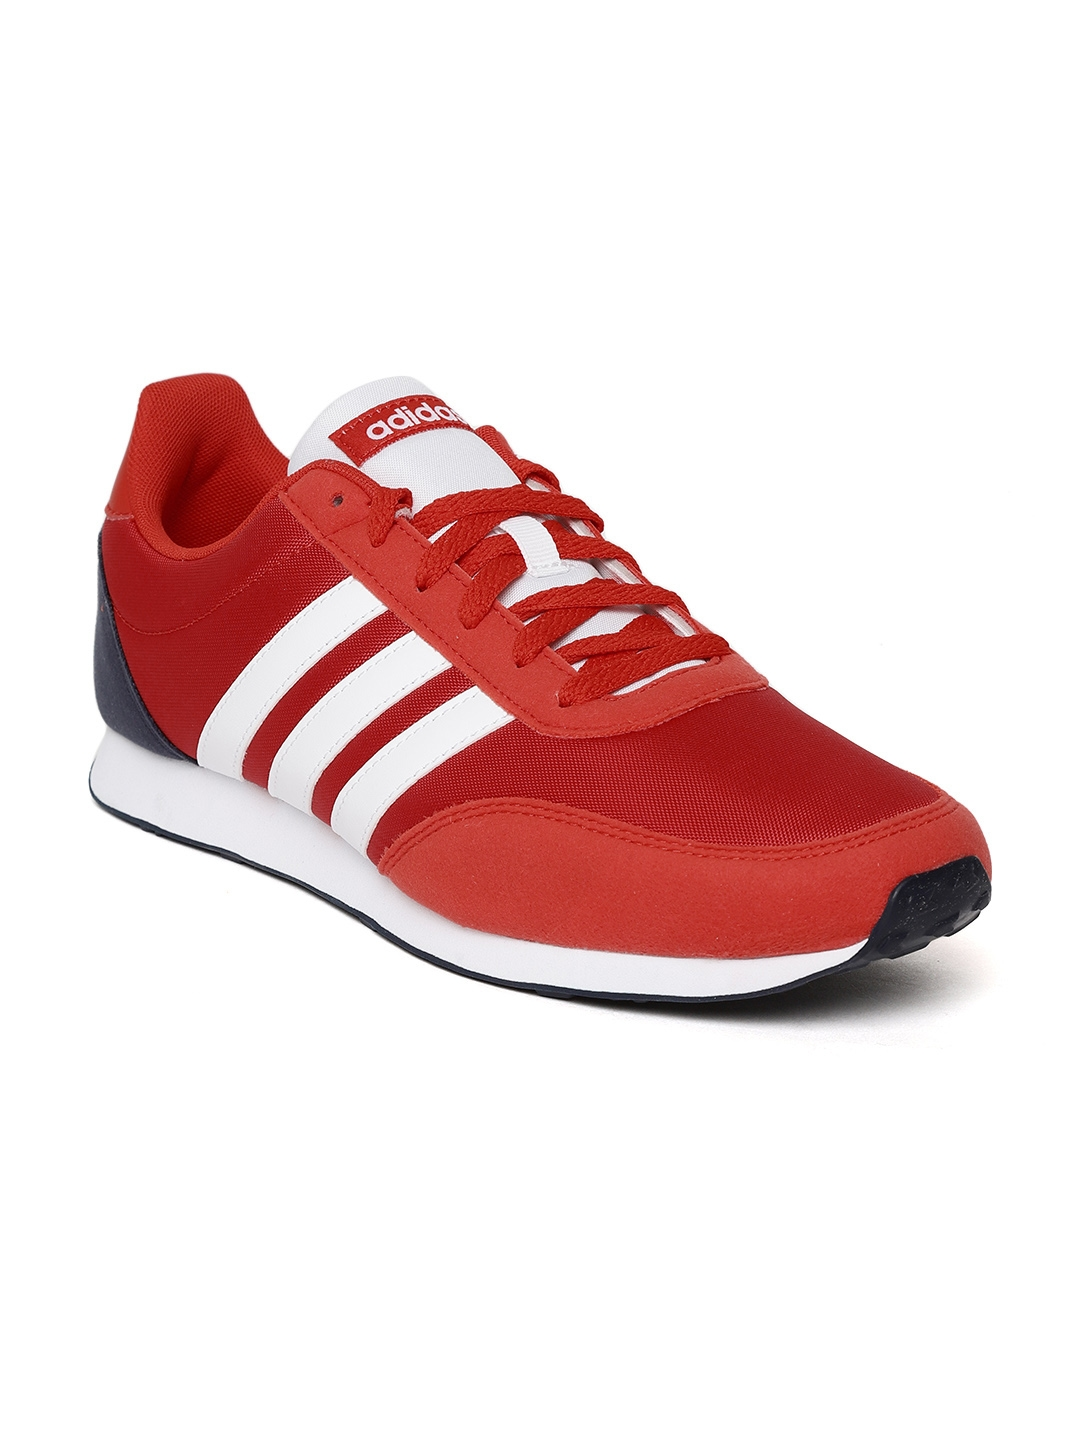 Adidas V Racer Red Cheap Online